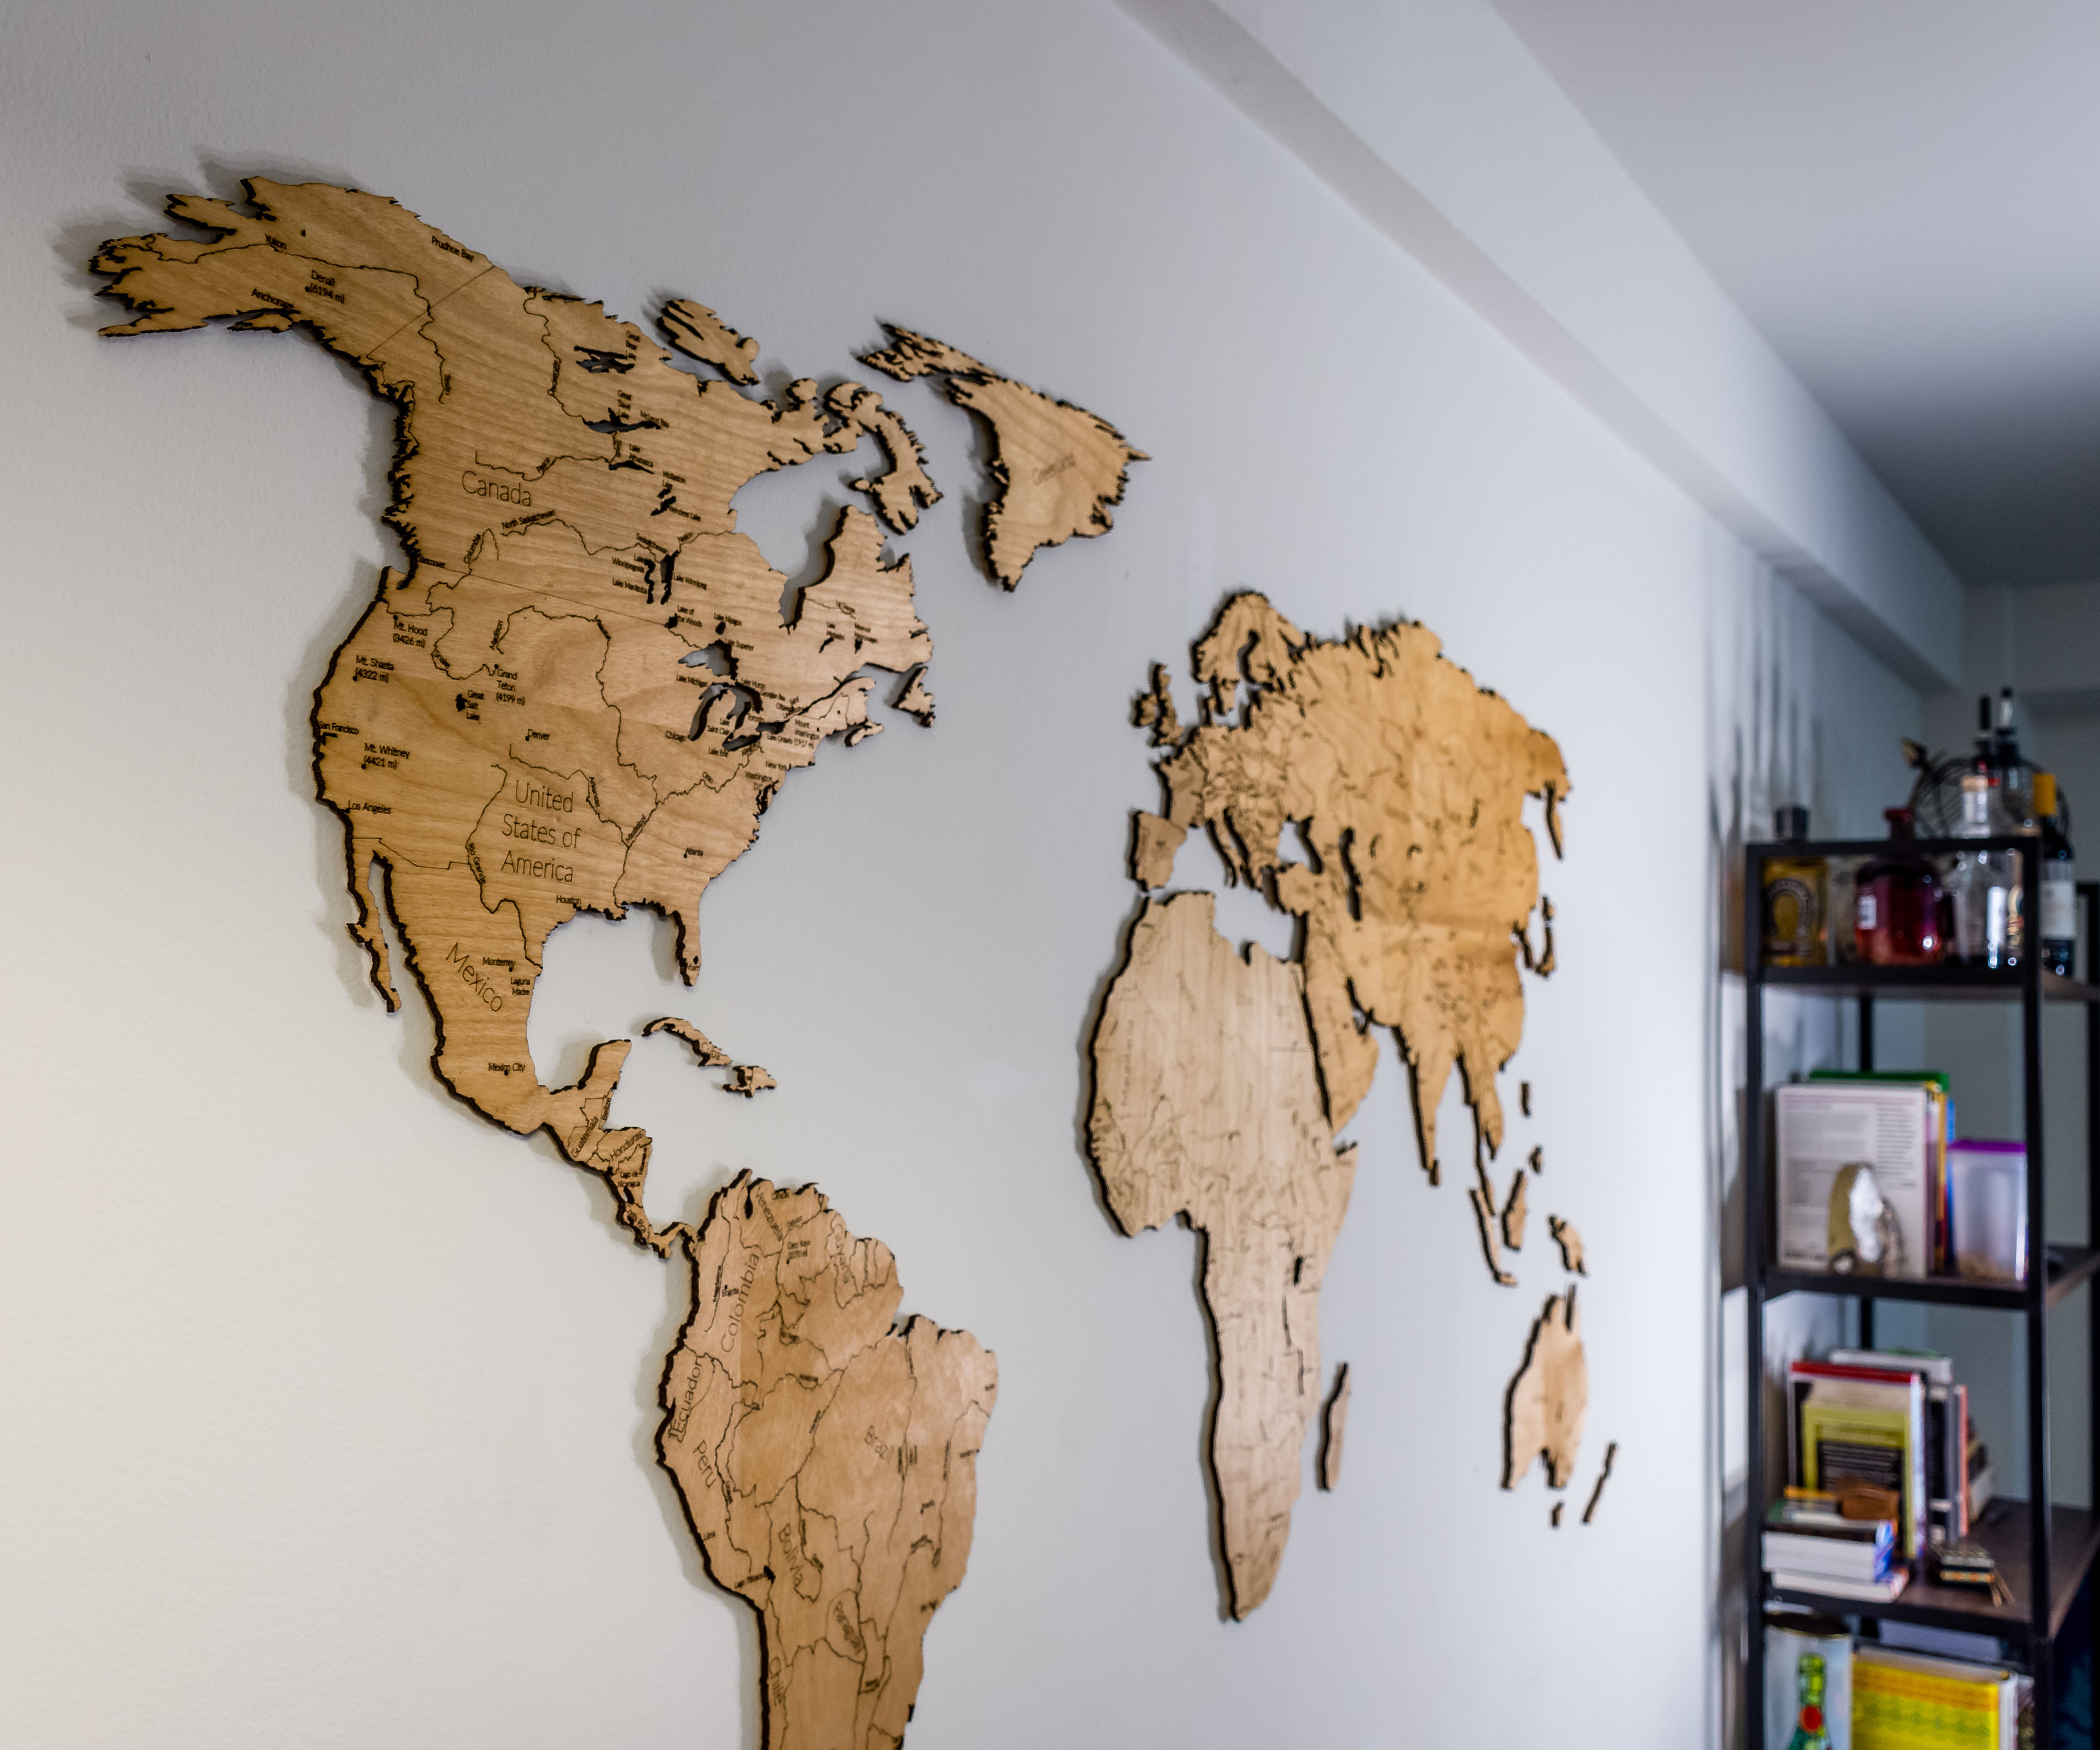 I Made a Large Wood Engraved Map of the World